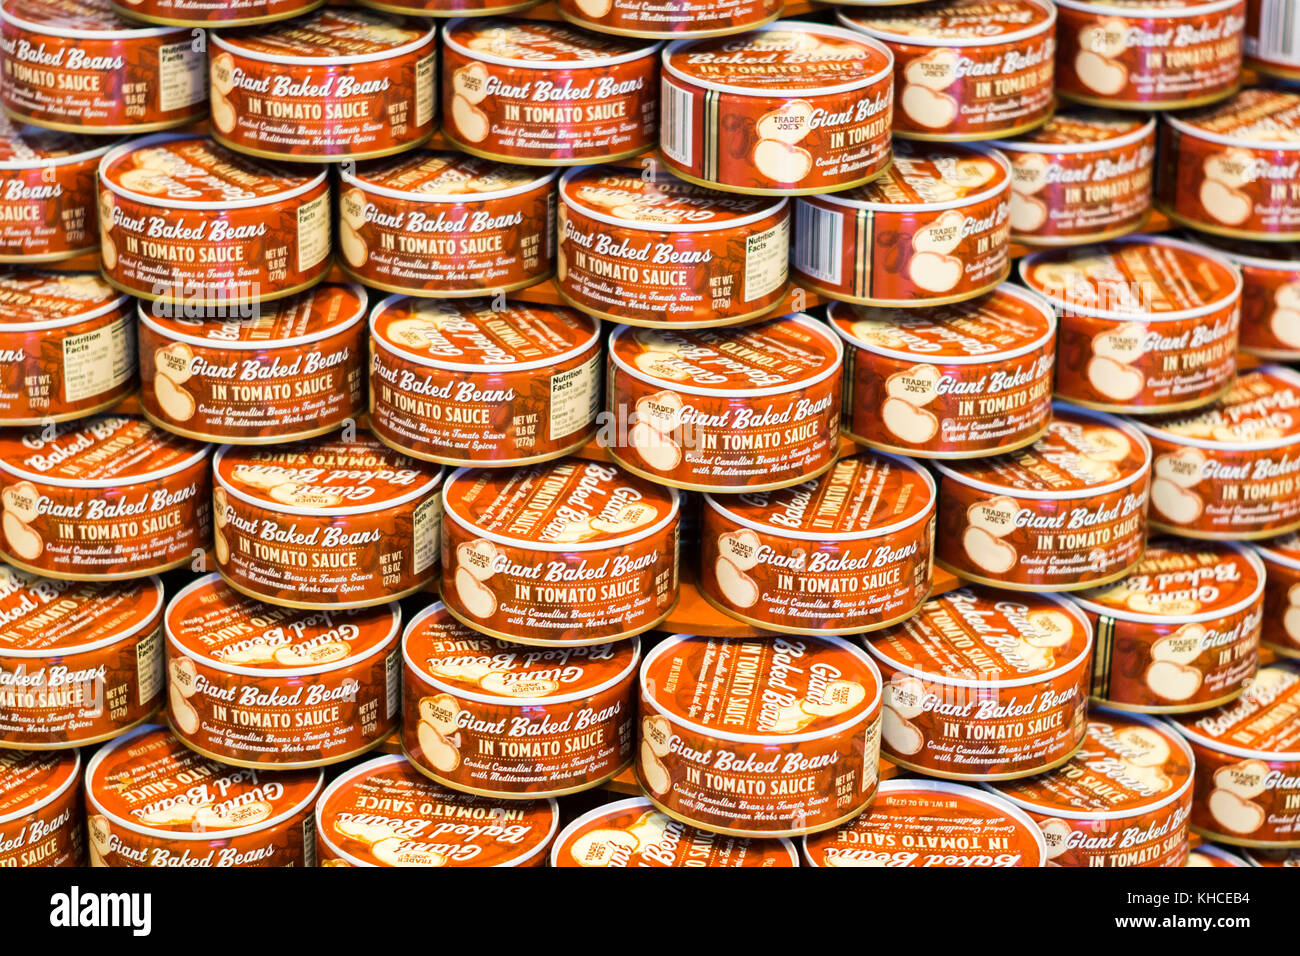 A display of Trader Joe's giant baked beans in tomato sauce cans in New York on Tuesday, November 7, 2017. (© - Stock Image